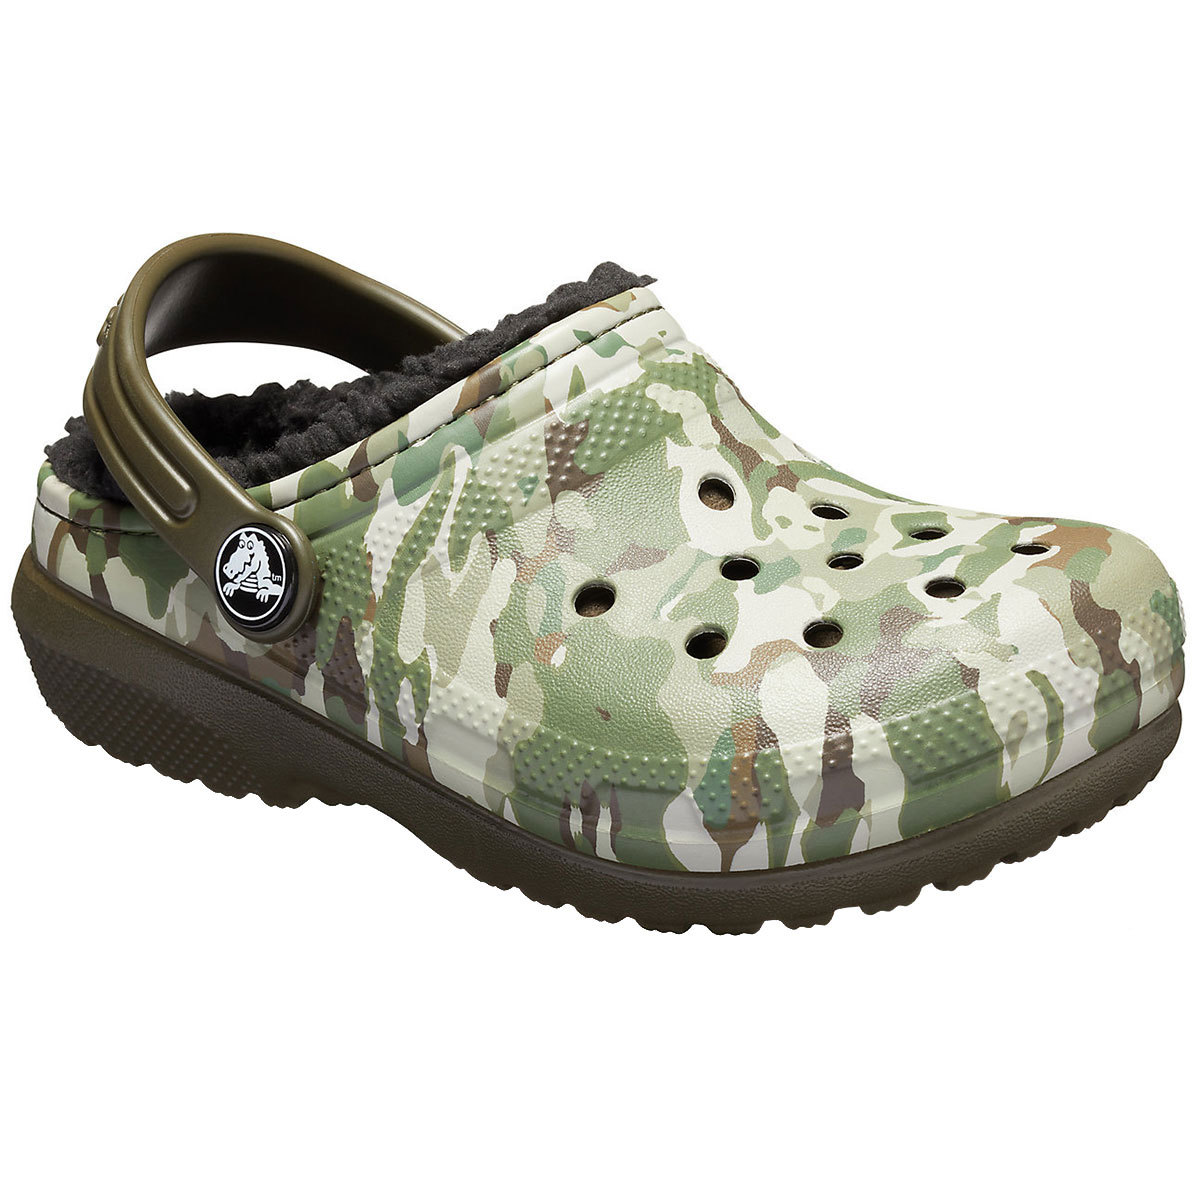 Crocs Boys' Classic Fuzz-Lined Graphic Clogs - Green, 1